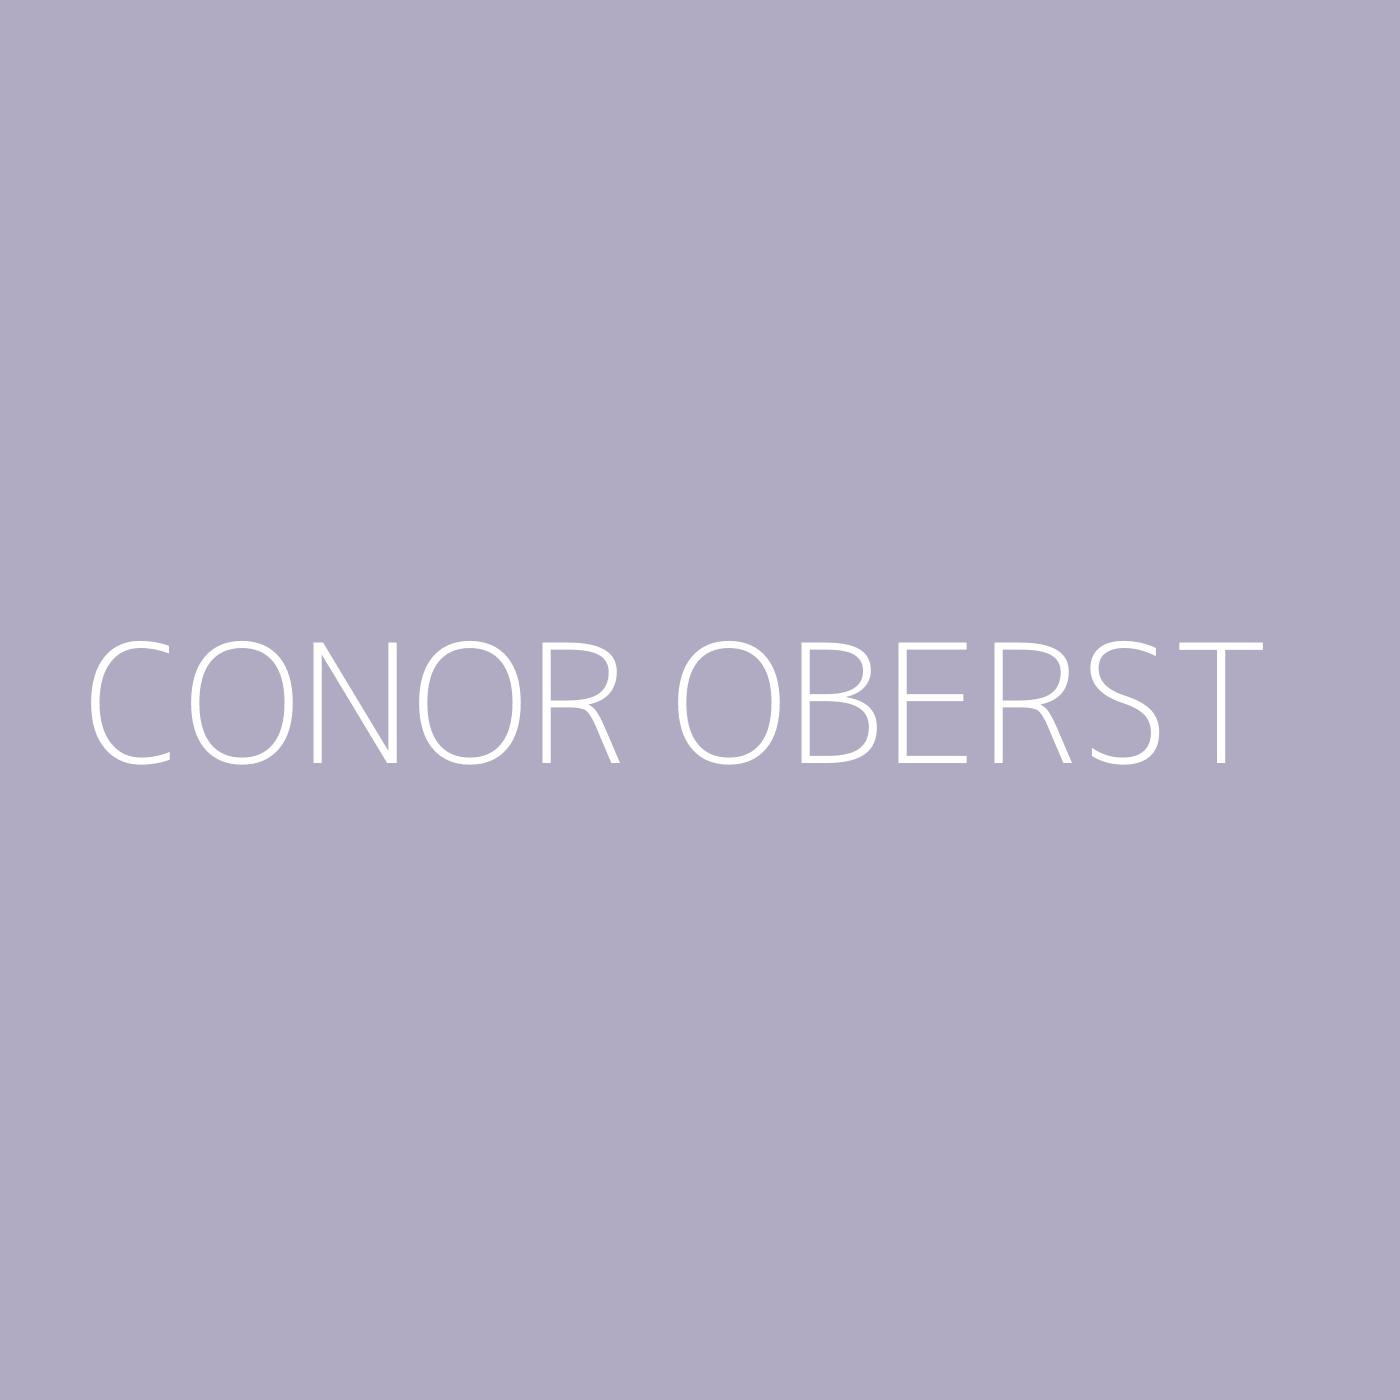 Conor Oberst Playlist Artwork